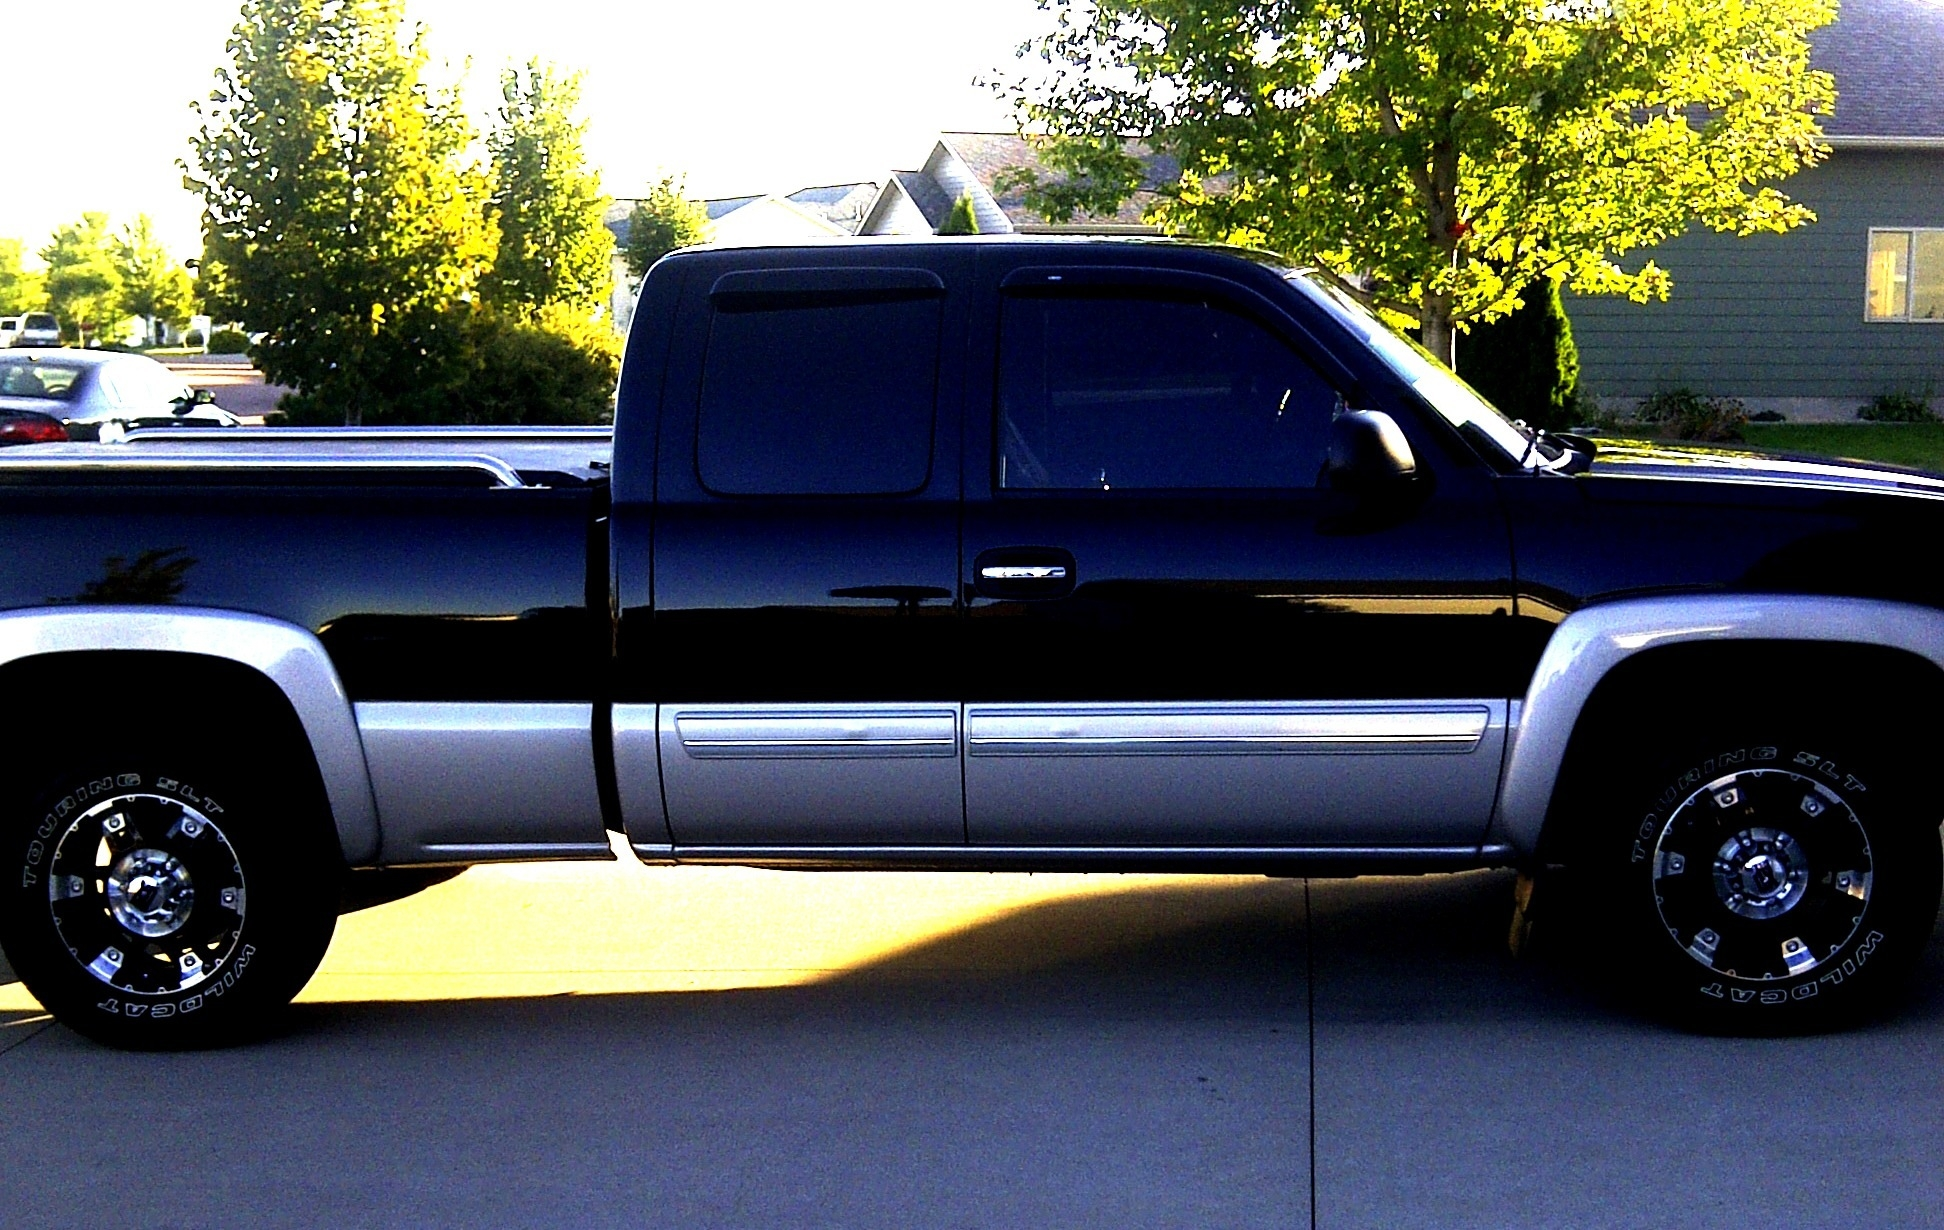 jr3019 2004 chevrolet silverado 1500 extended cab specs. Black Bedroom Furniture Sets. Home Design Ideas